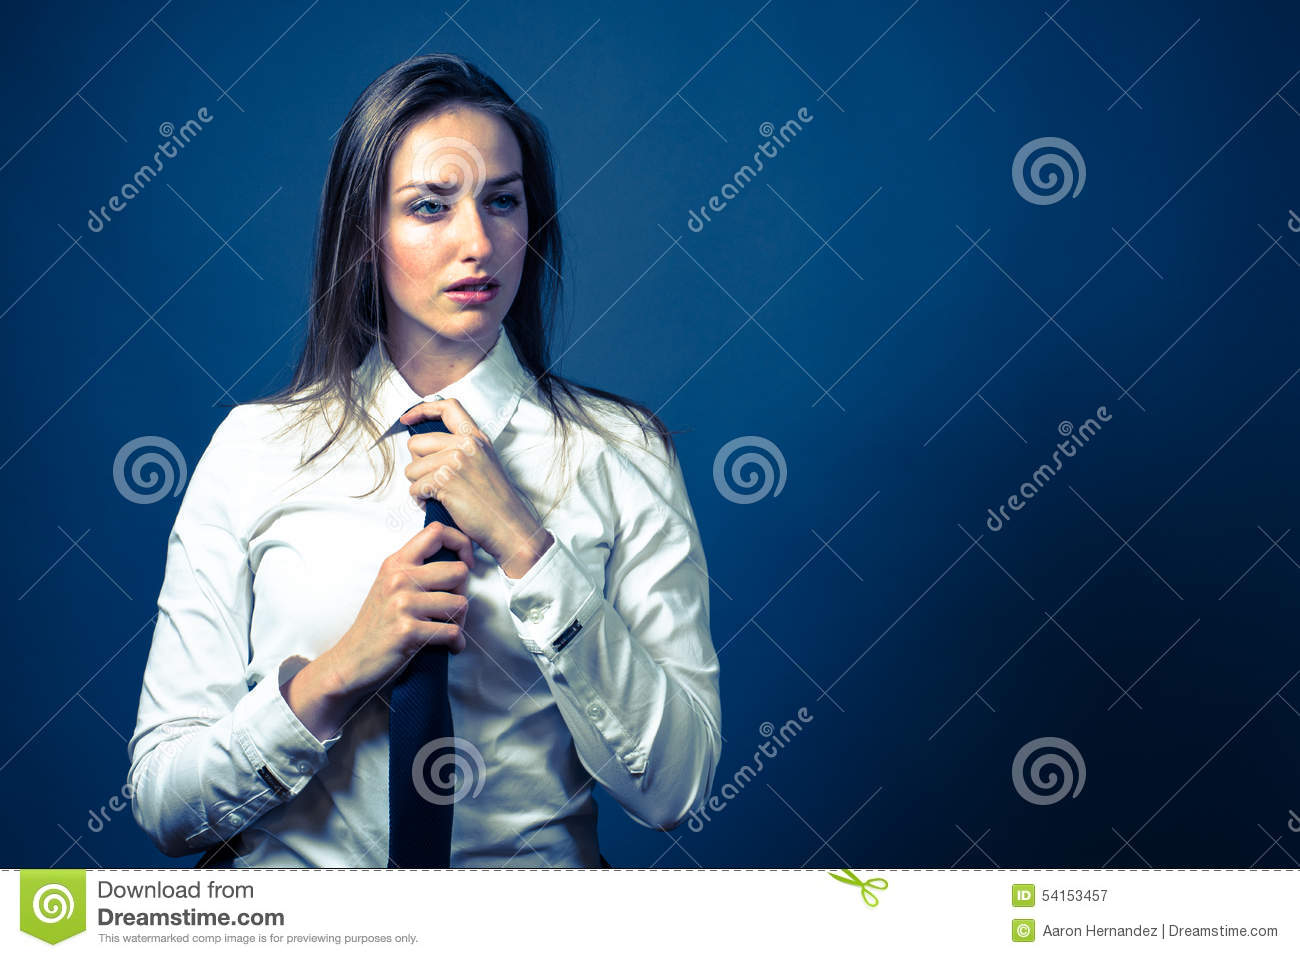 American Woman In White Shirt & Tie Stock Photo - Image: 54153545